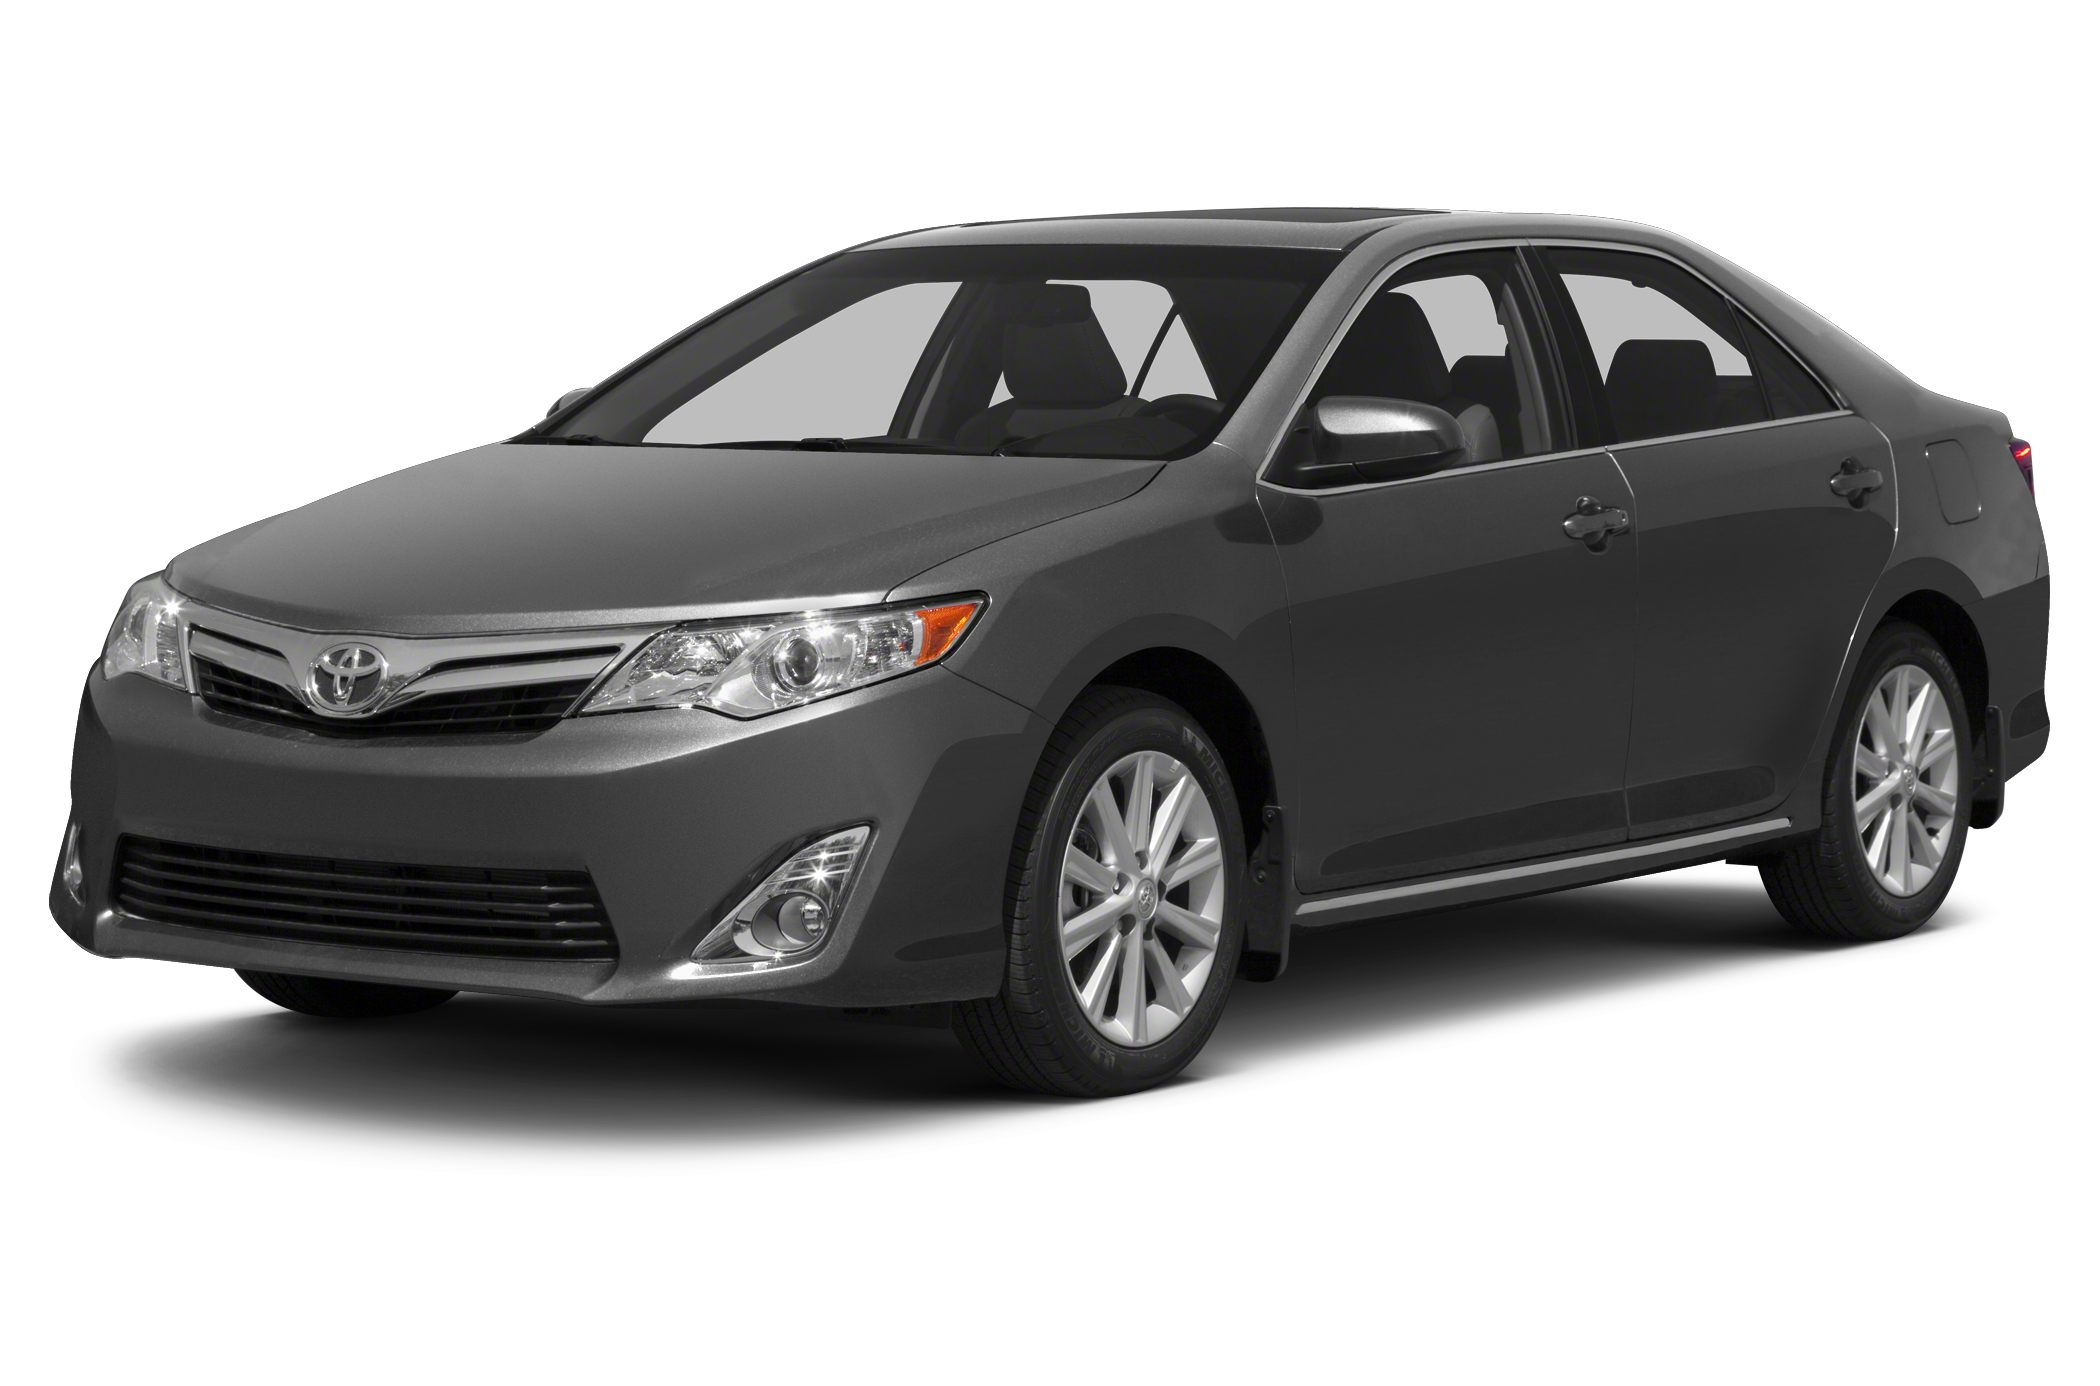 2012 Toyota Camry LE Sedan for sale in Buckhannon for $18,999 with 17,615 miles